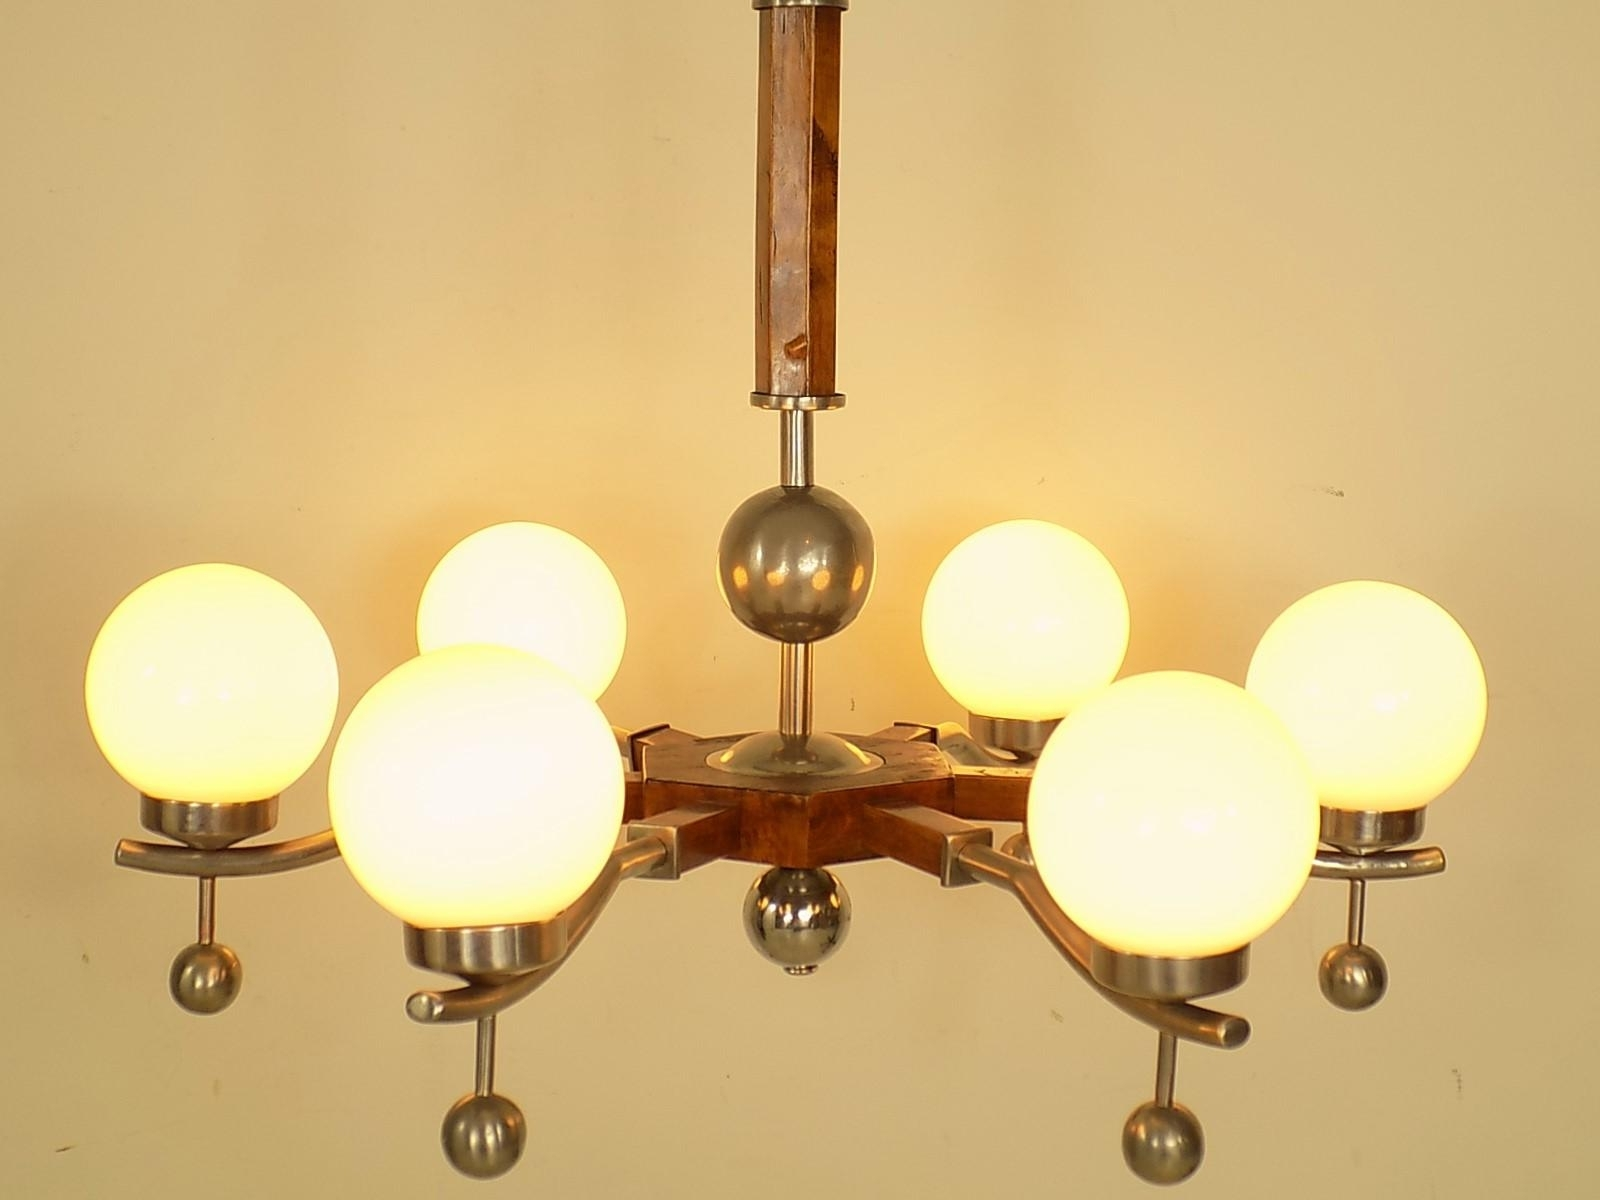 Newest Art Deco Chandelier, 1930S For Sale At Pamono Inside Art Deco Chandelier (Gallery 2 of 20)